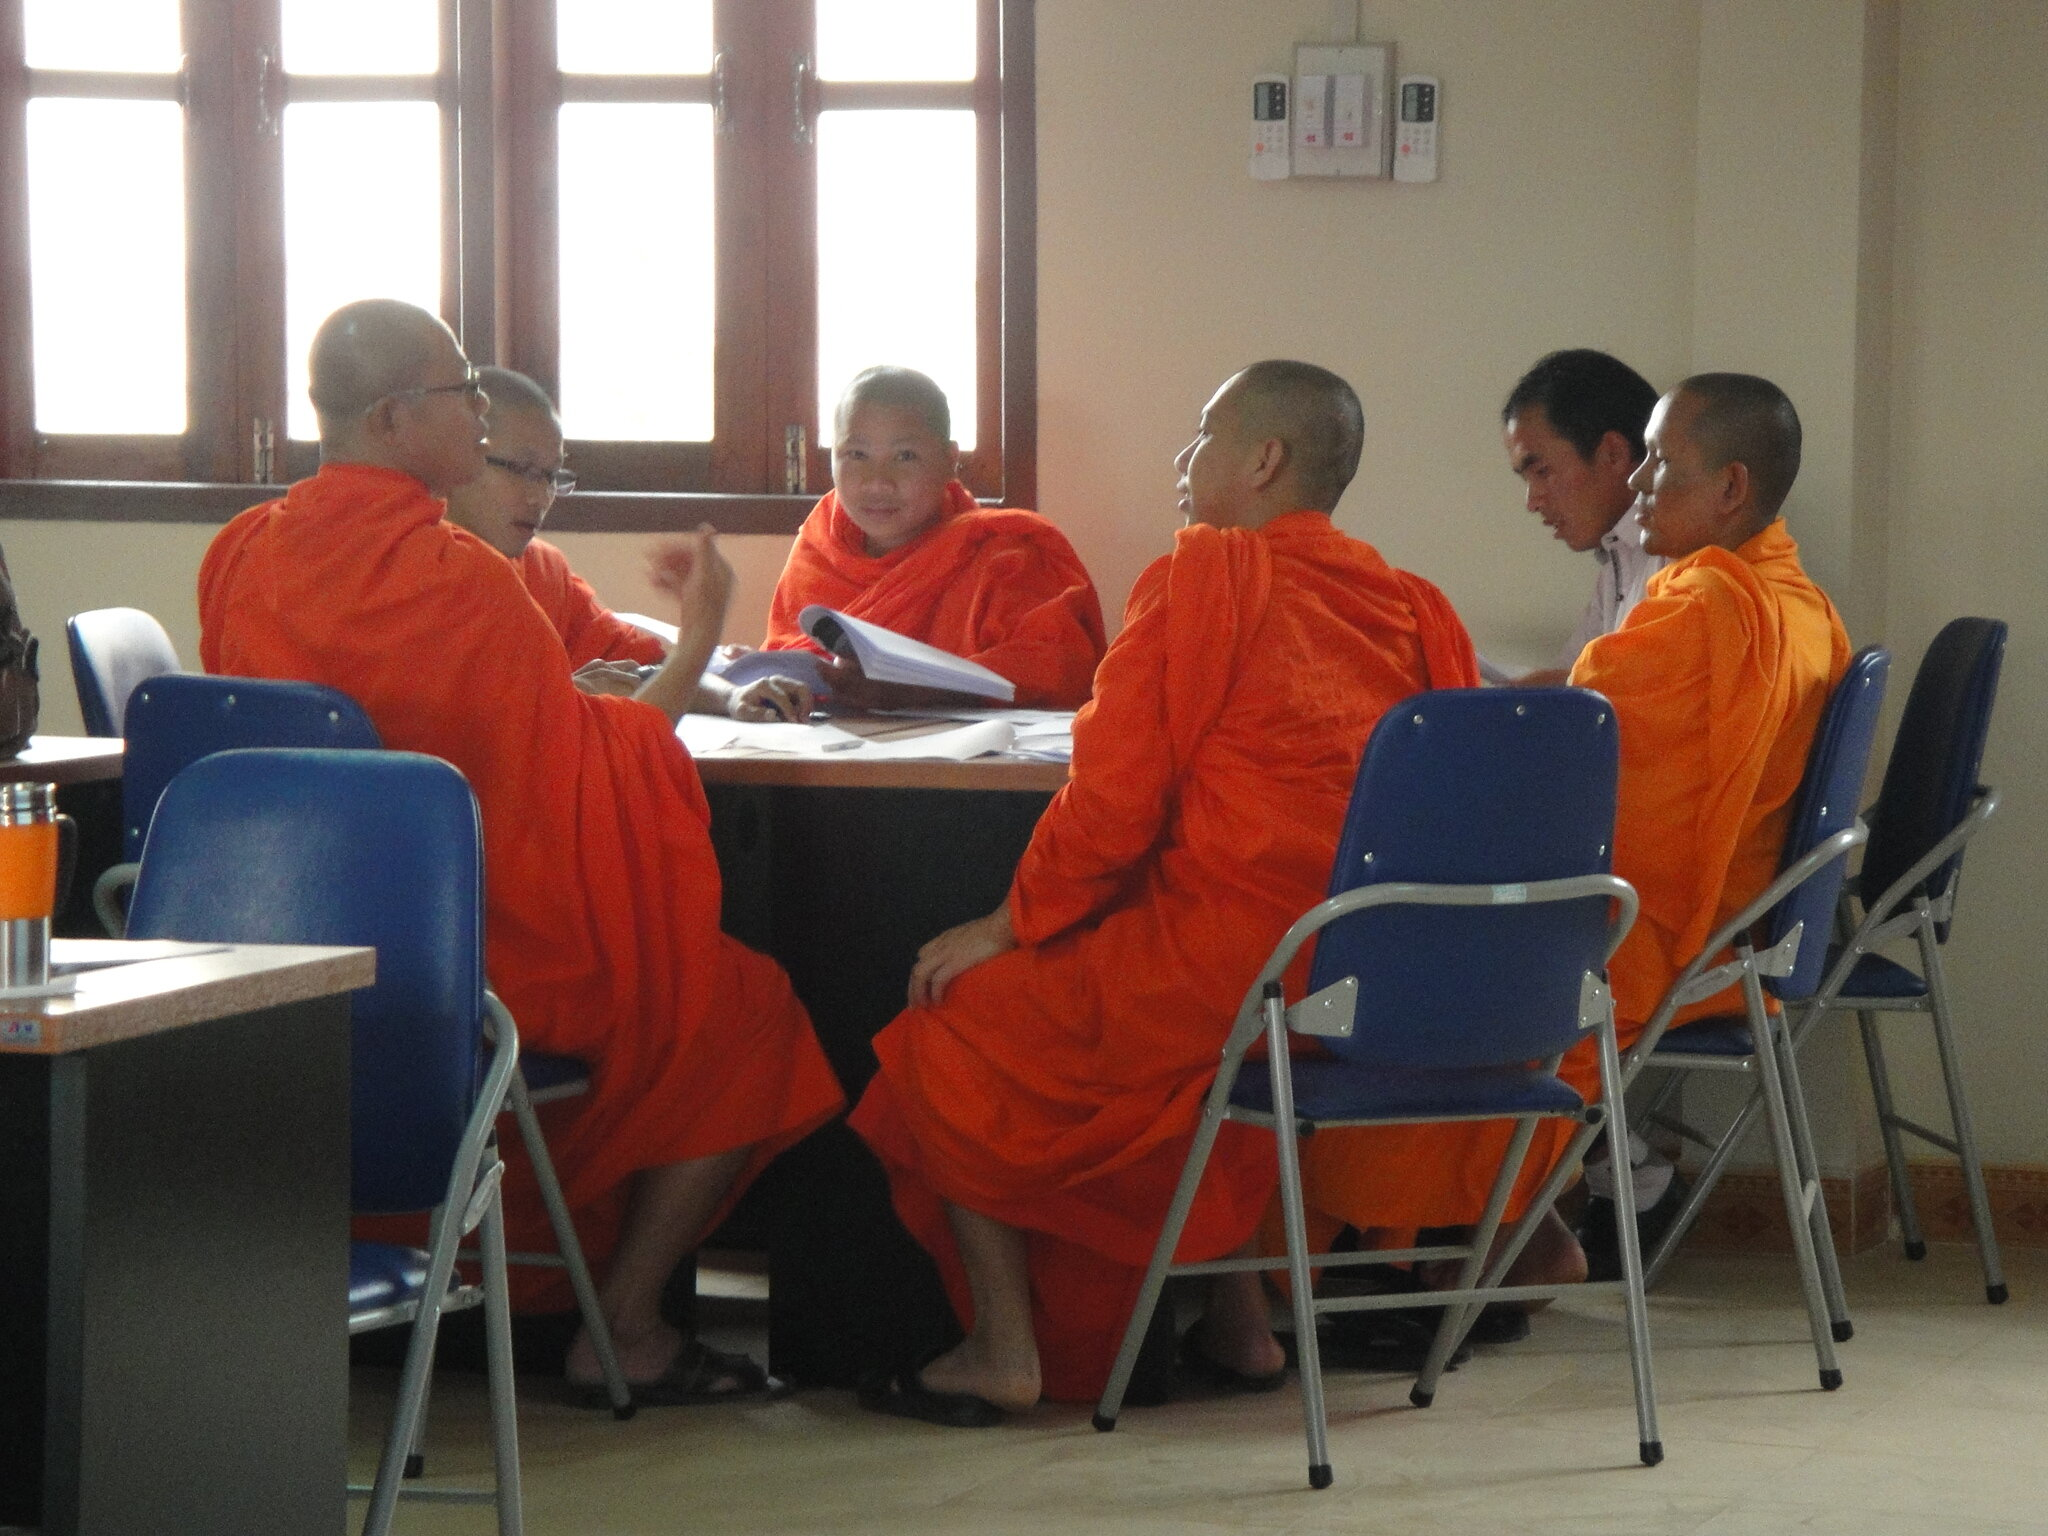 Working group exercise of Monks during counselling training inXeingkhouang Province in March 2016.JPG